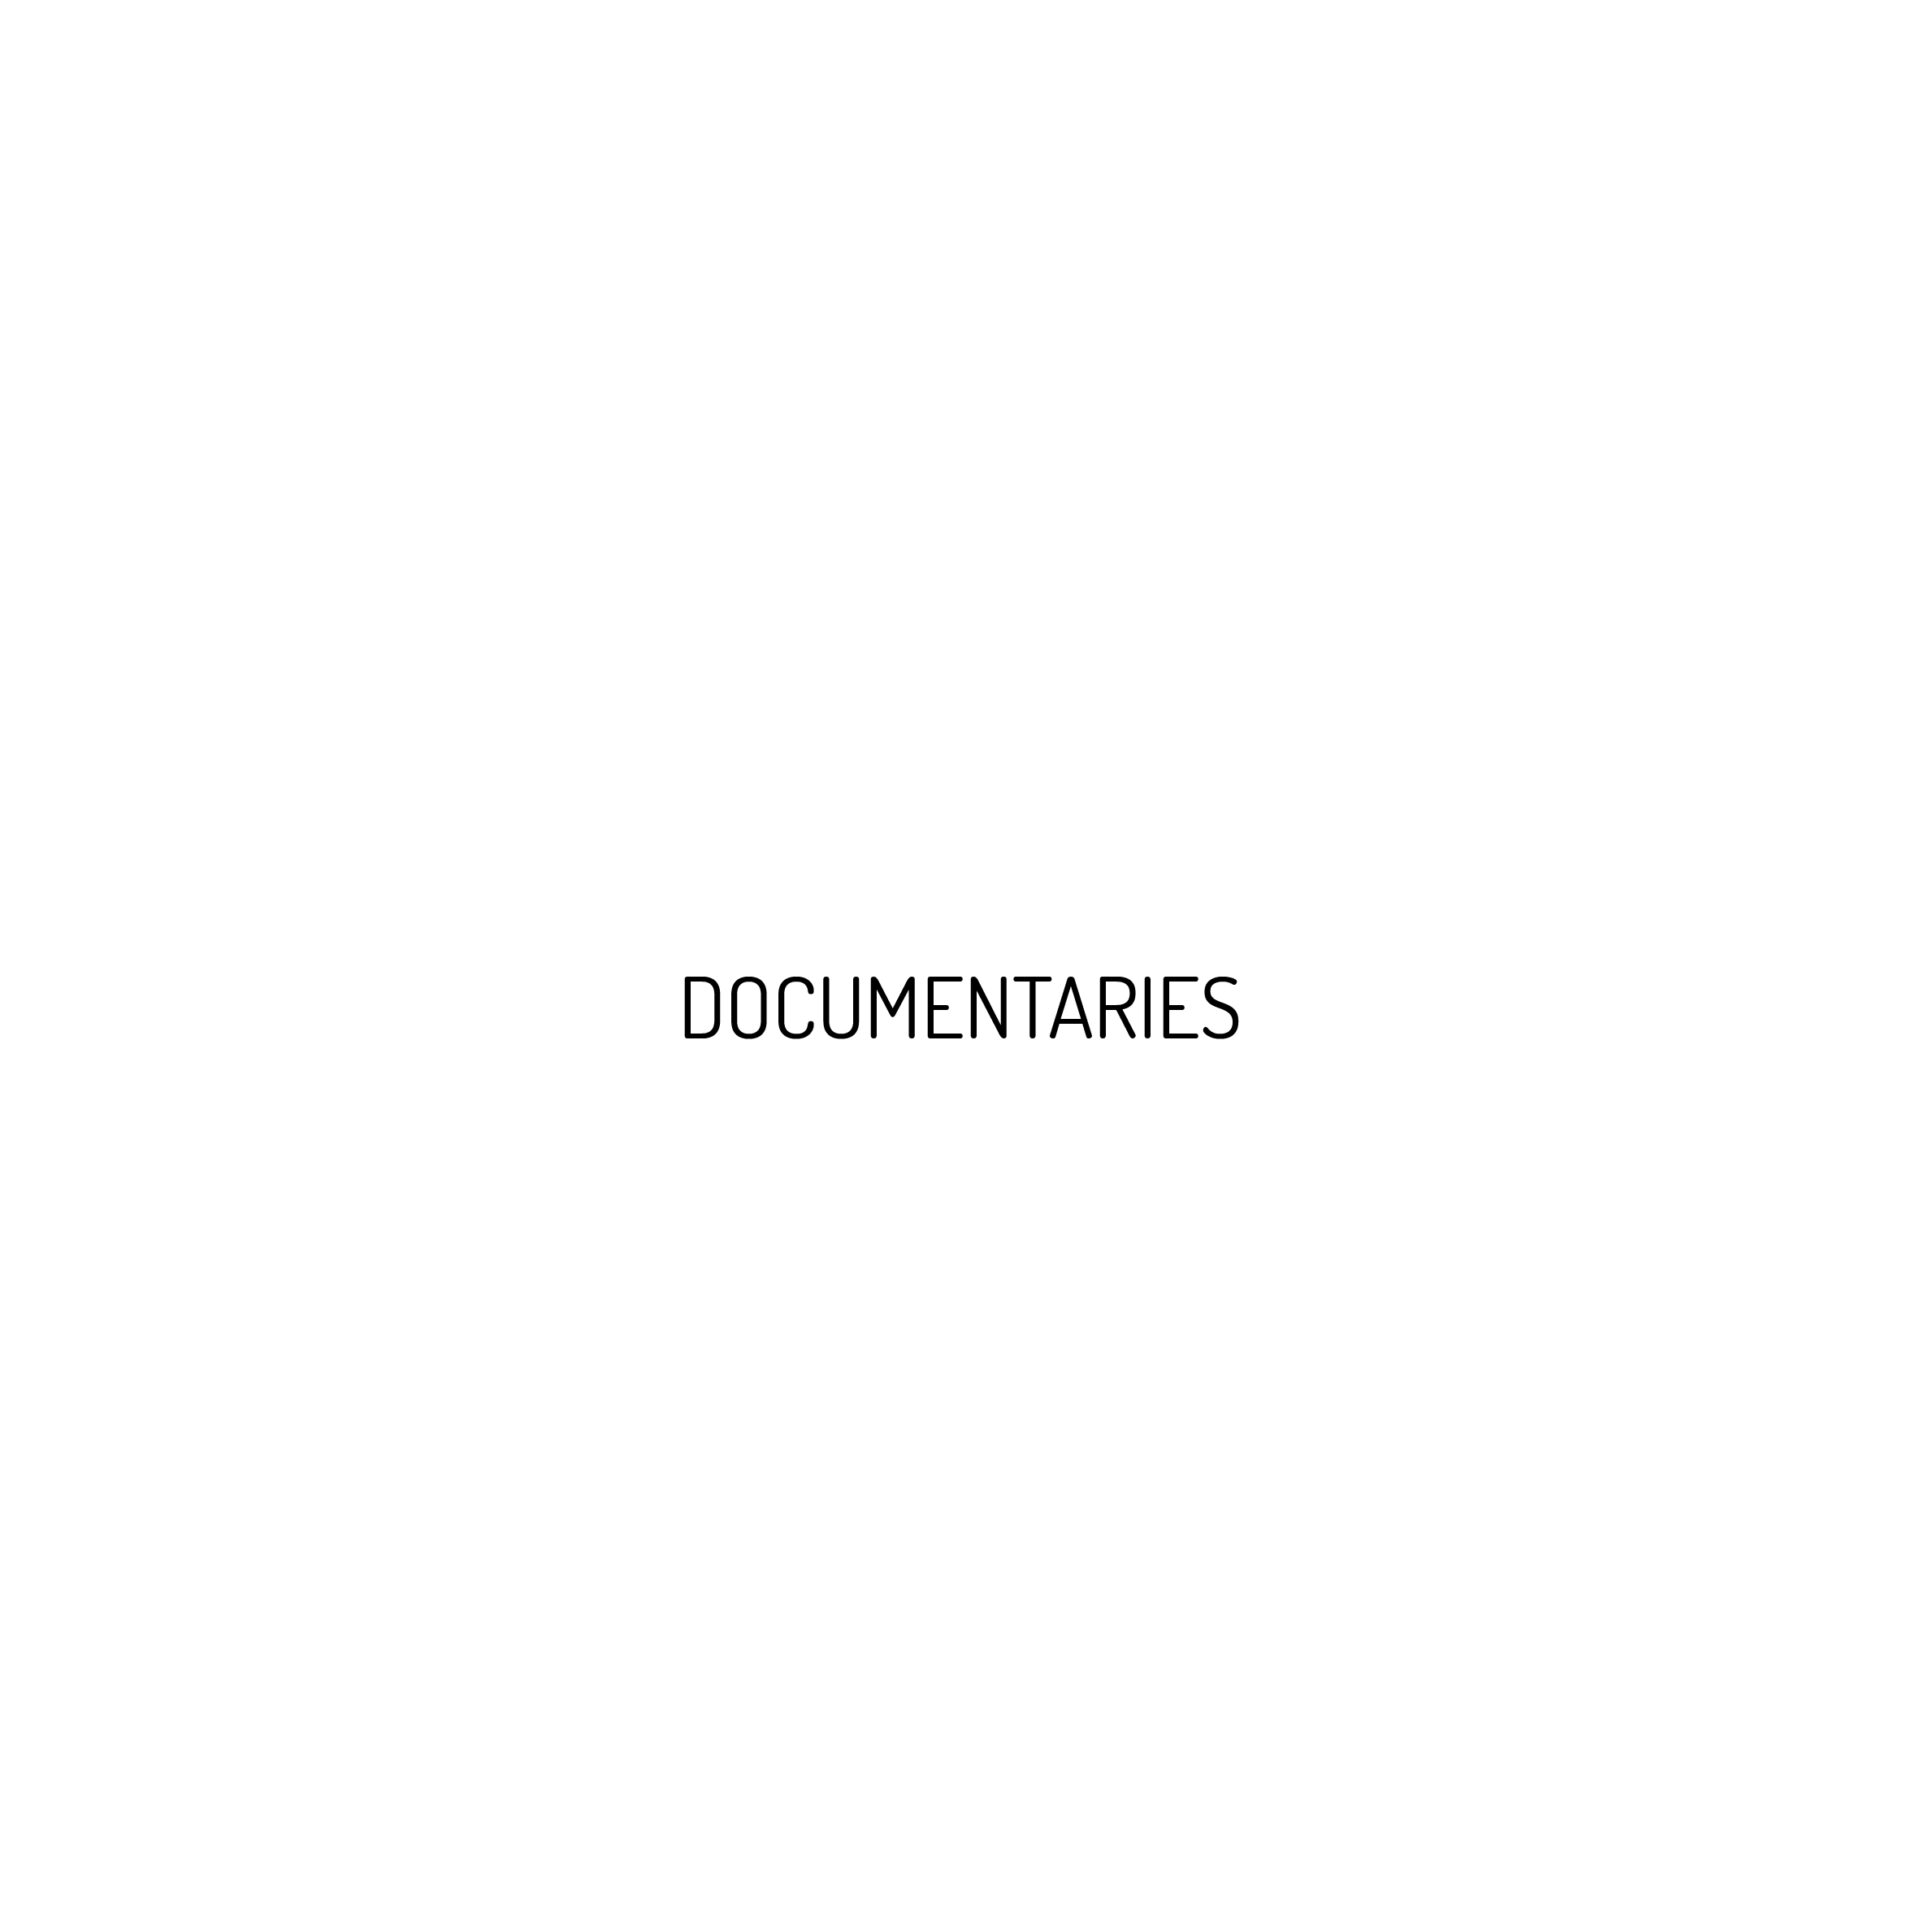 SEPARADORES_documentaries, lectures and interviews-02